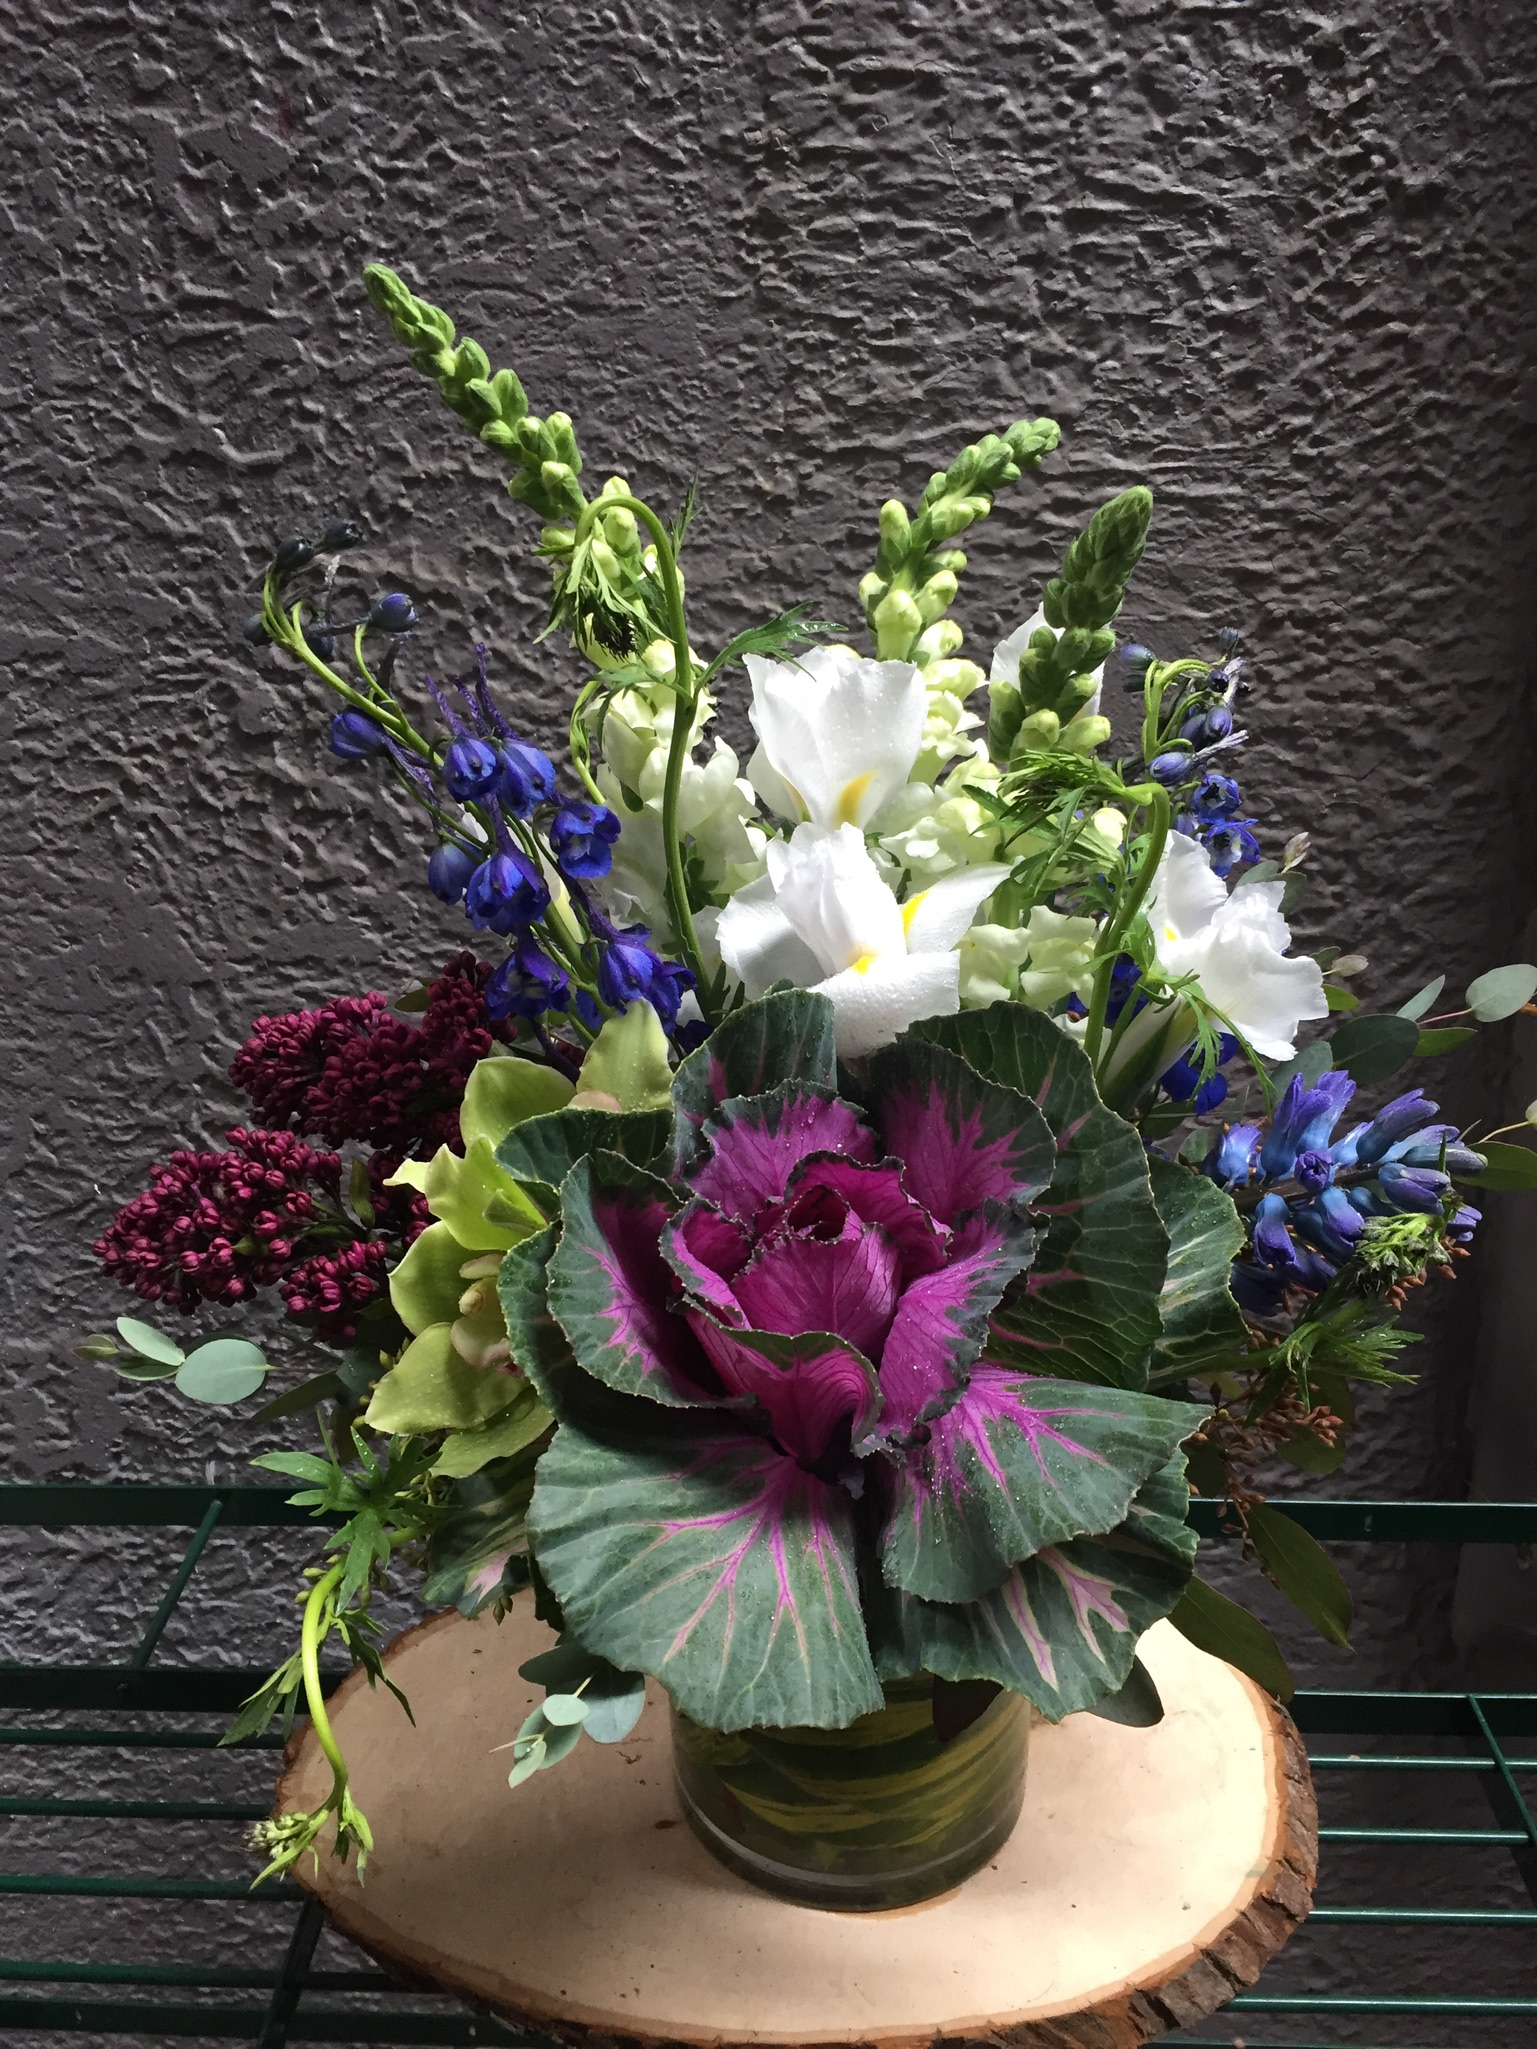 5. Blues and Purples with Kale